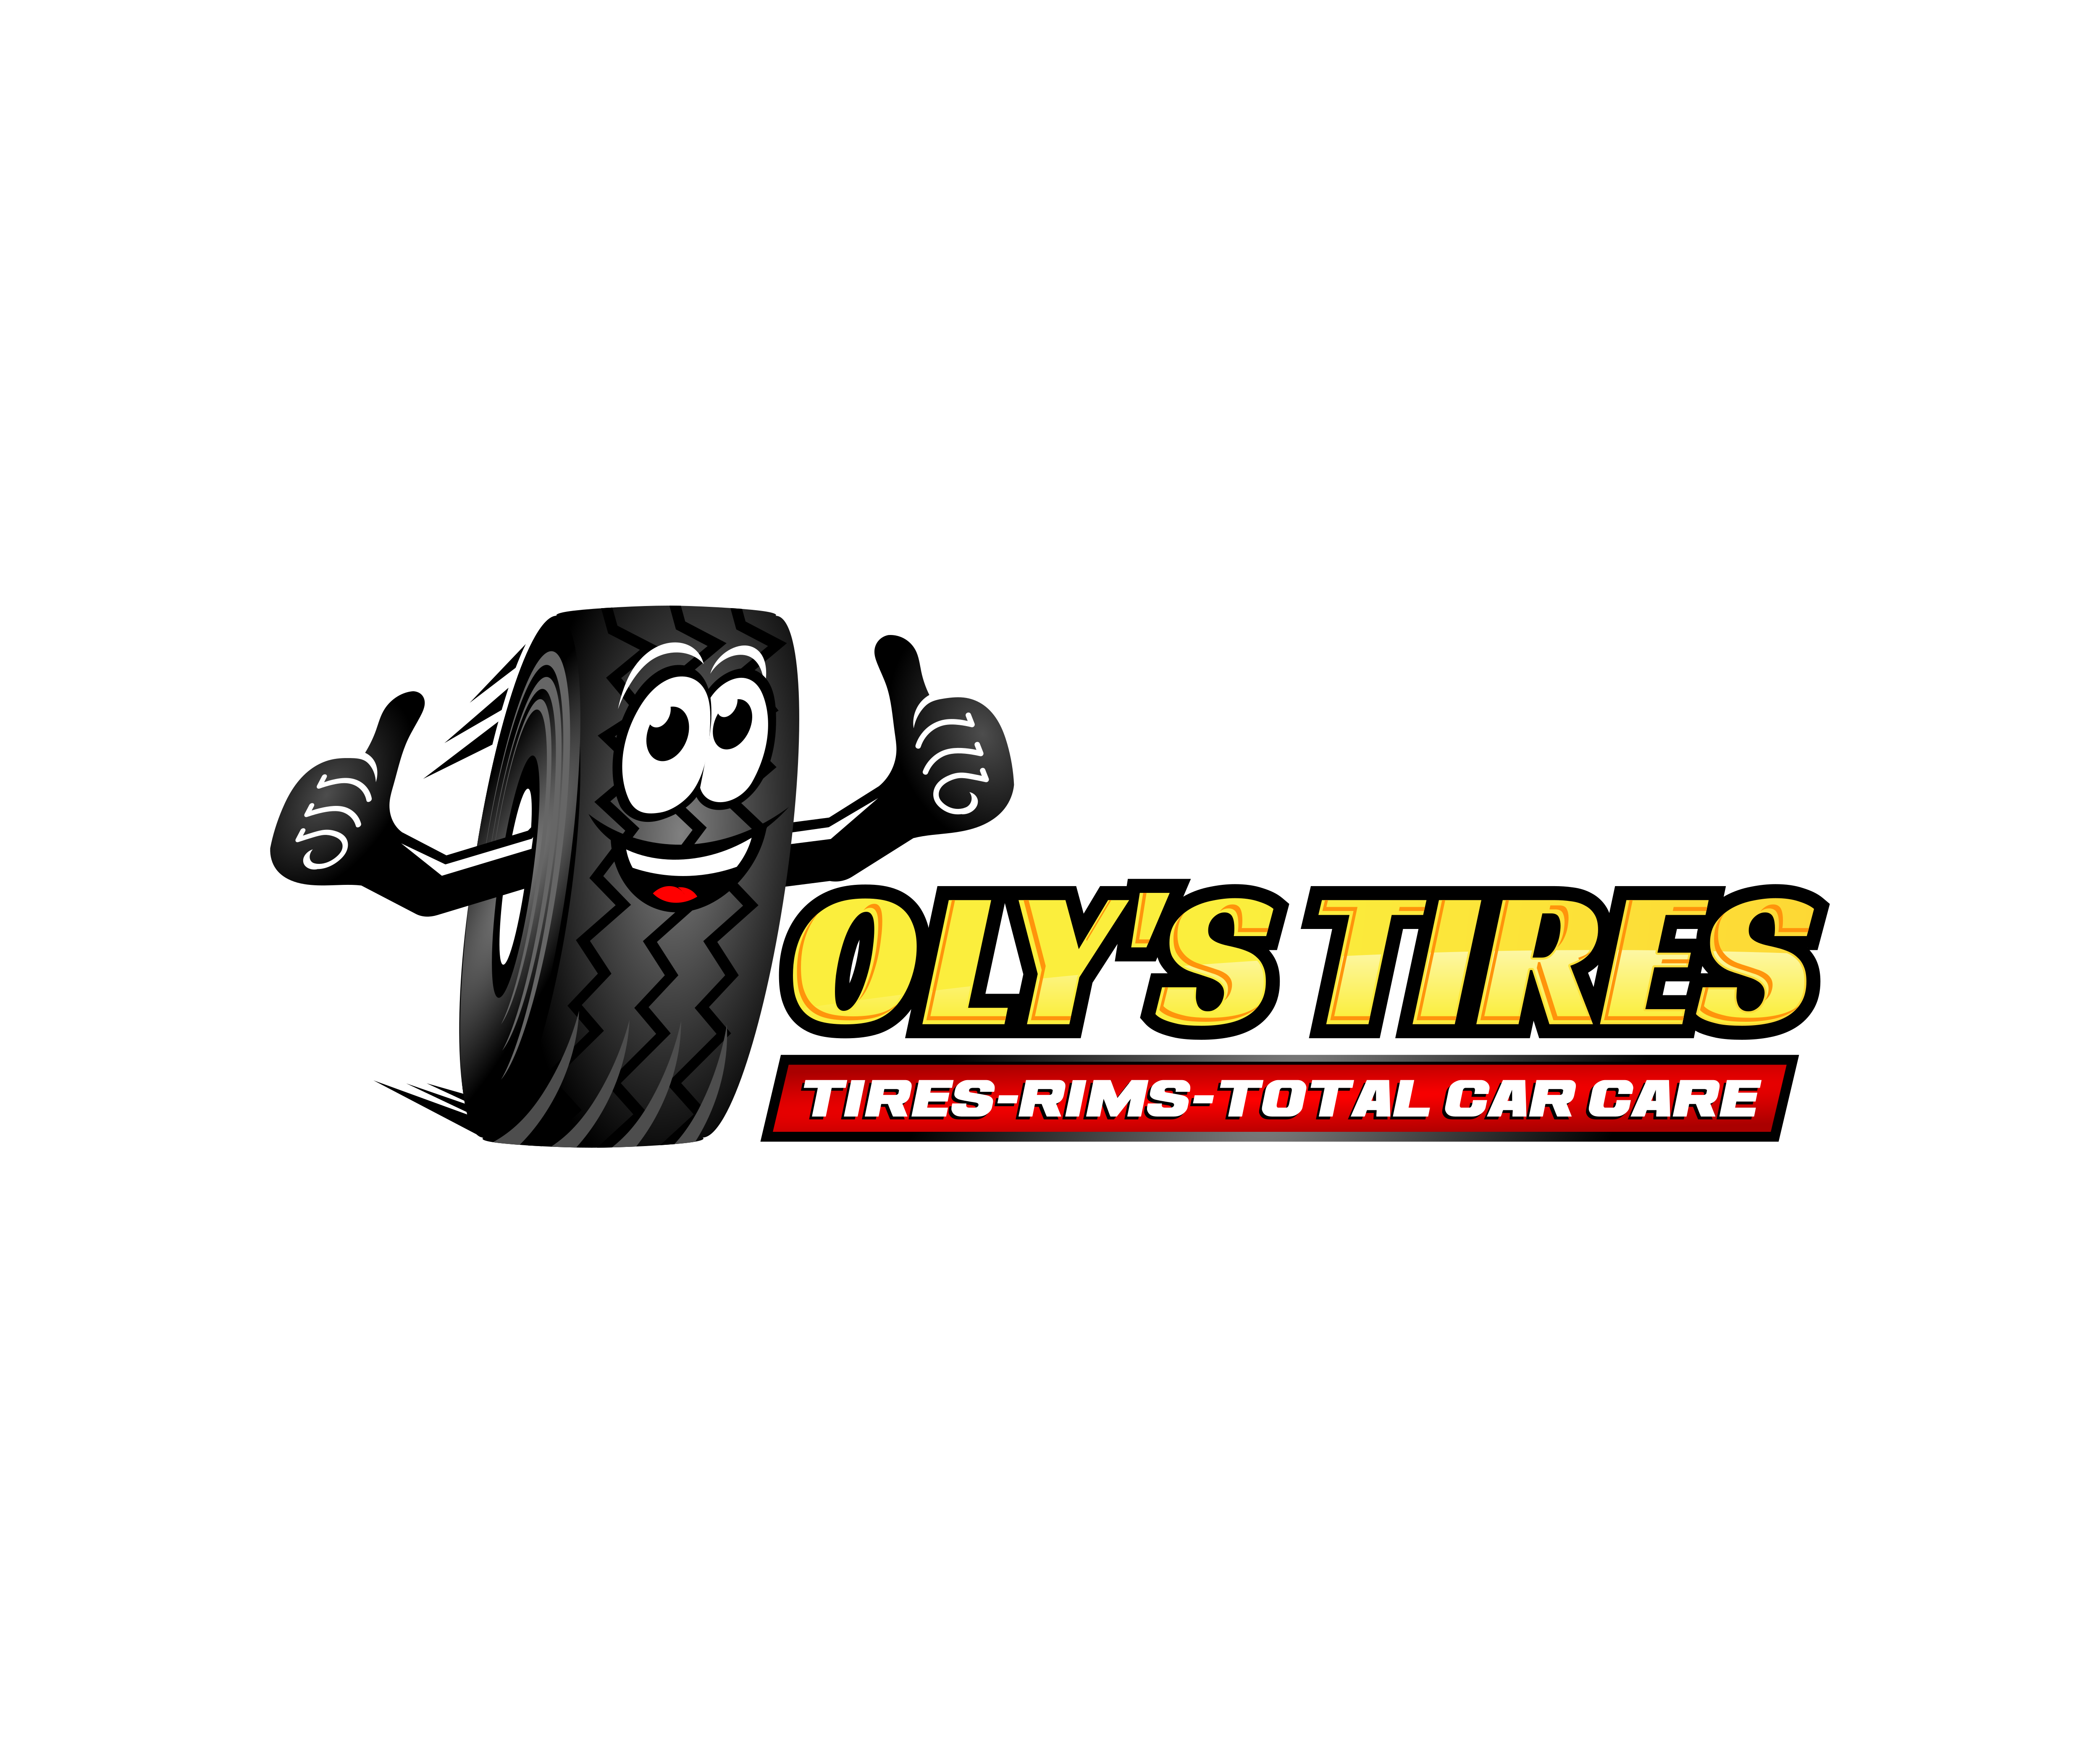 OLY'S TIRES image 0